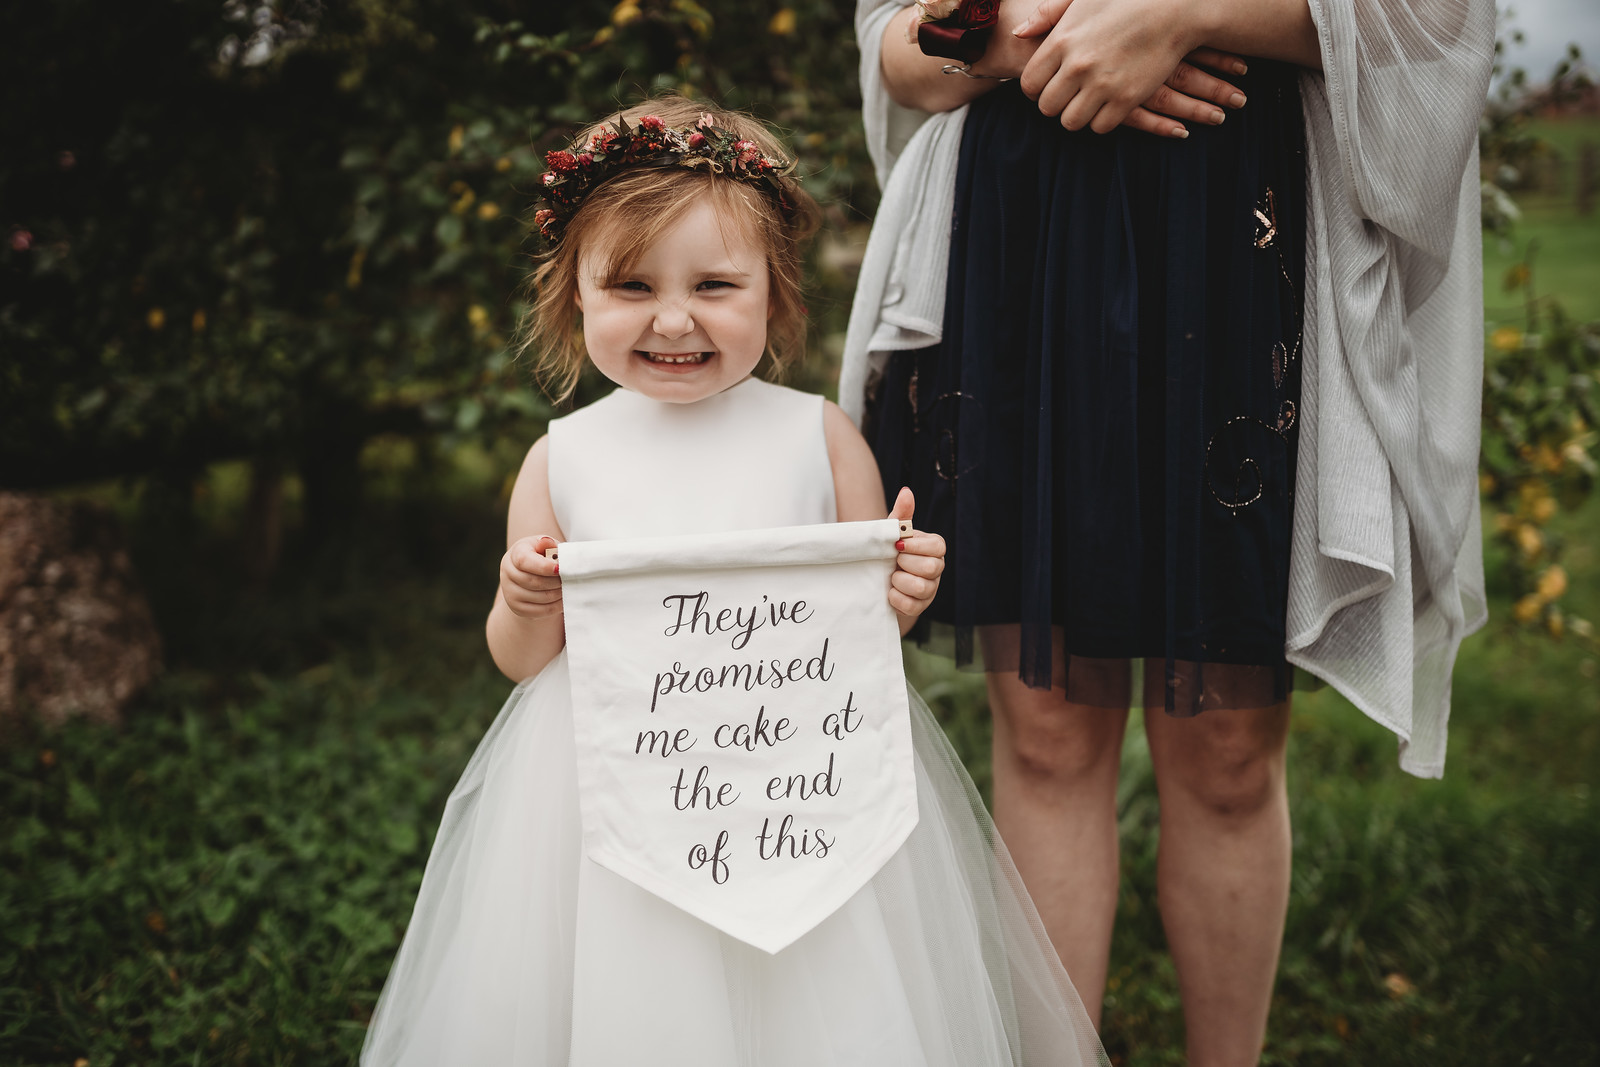 Young child holding a wedding sign